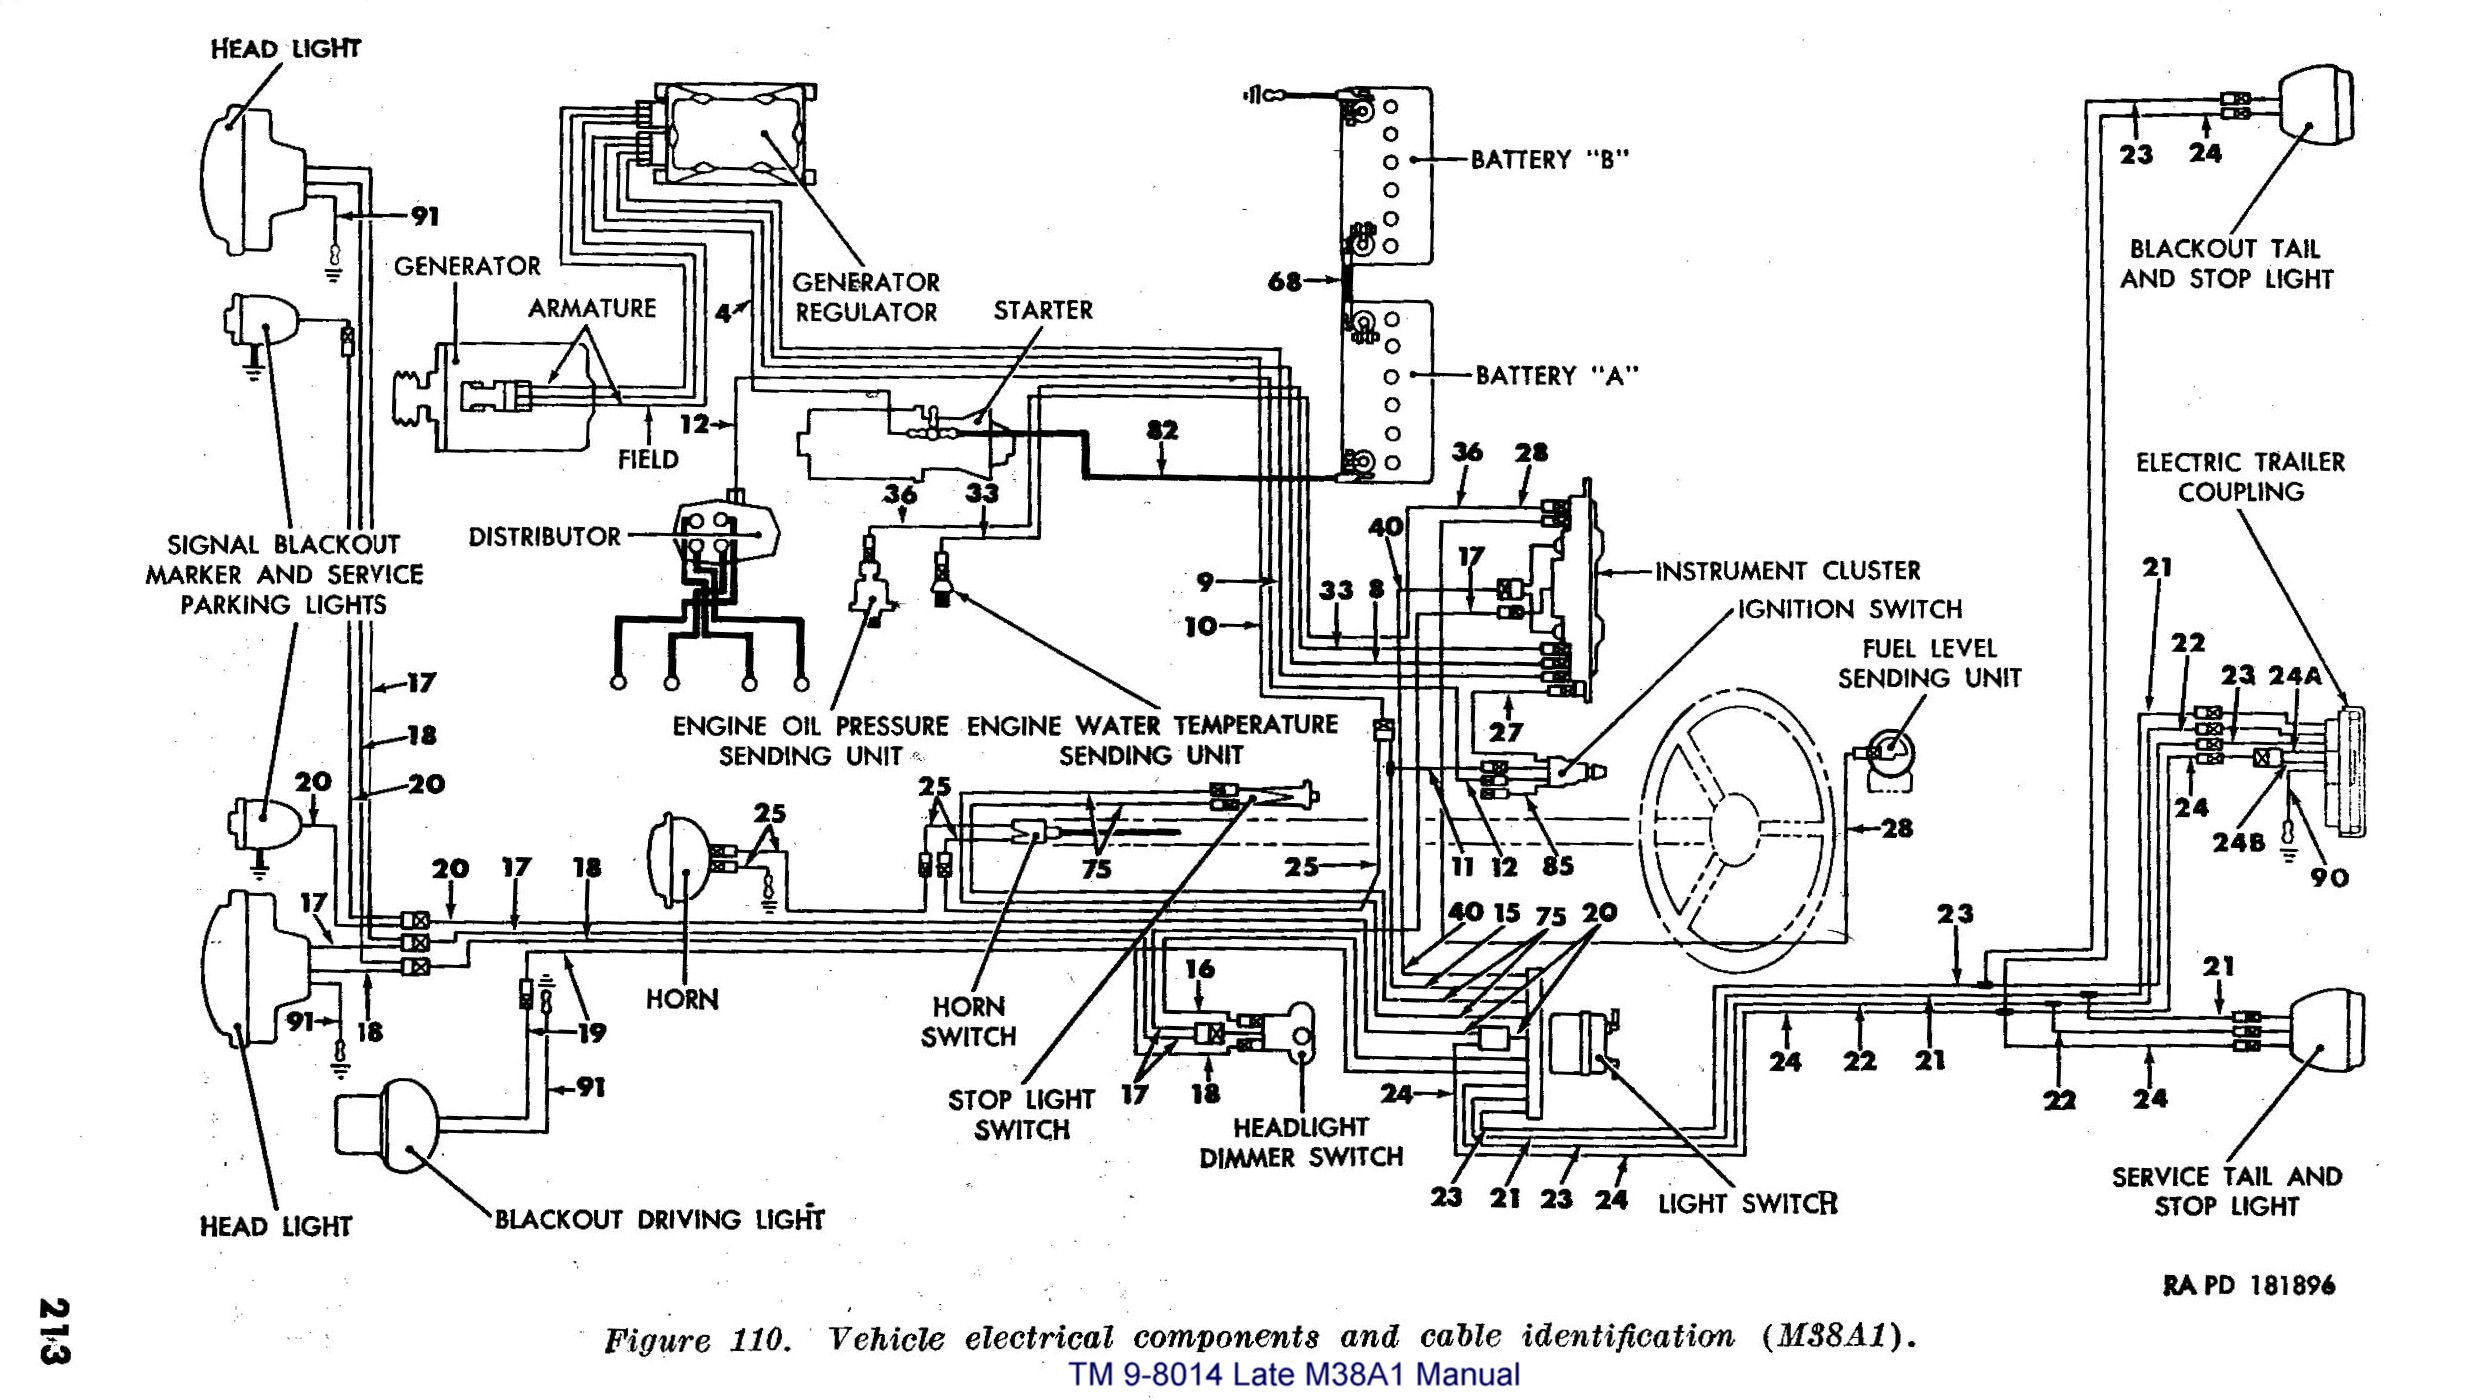 willys jeep wiring diagram headphone mic willysmjeeps m38a1 and m170 electrical tm 9 8014 fig